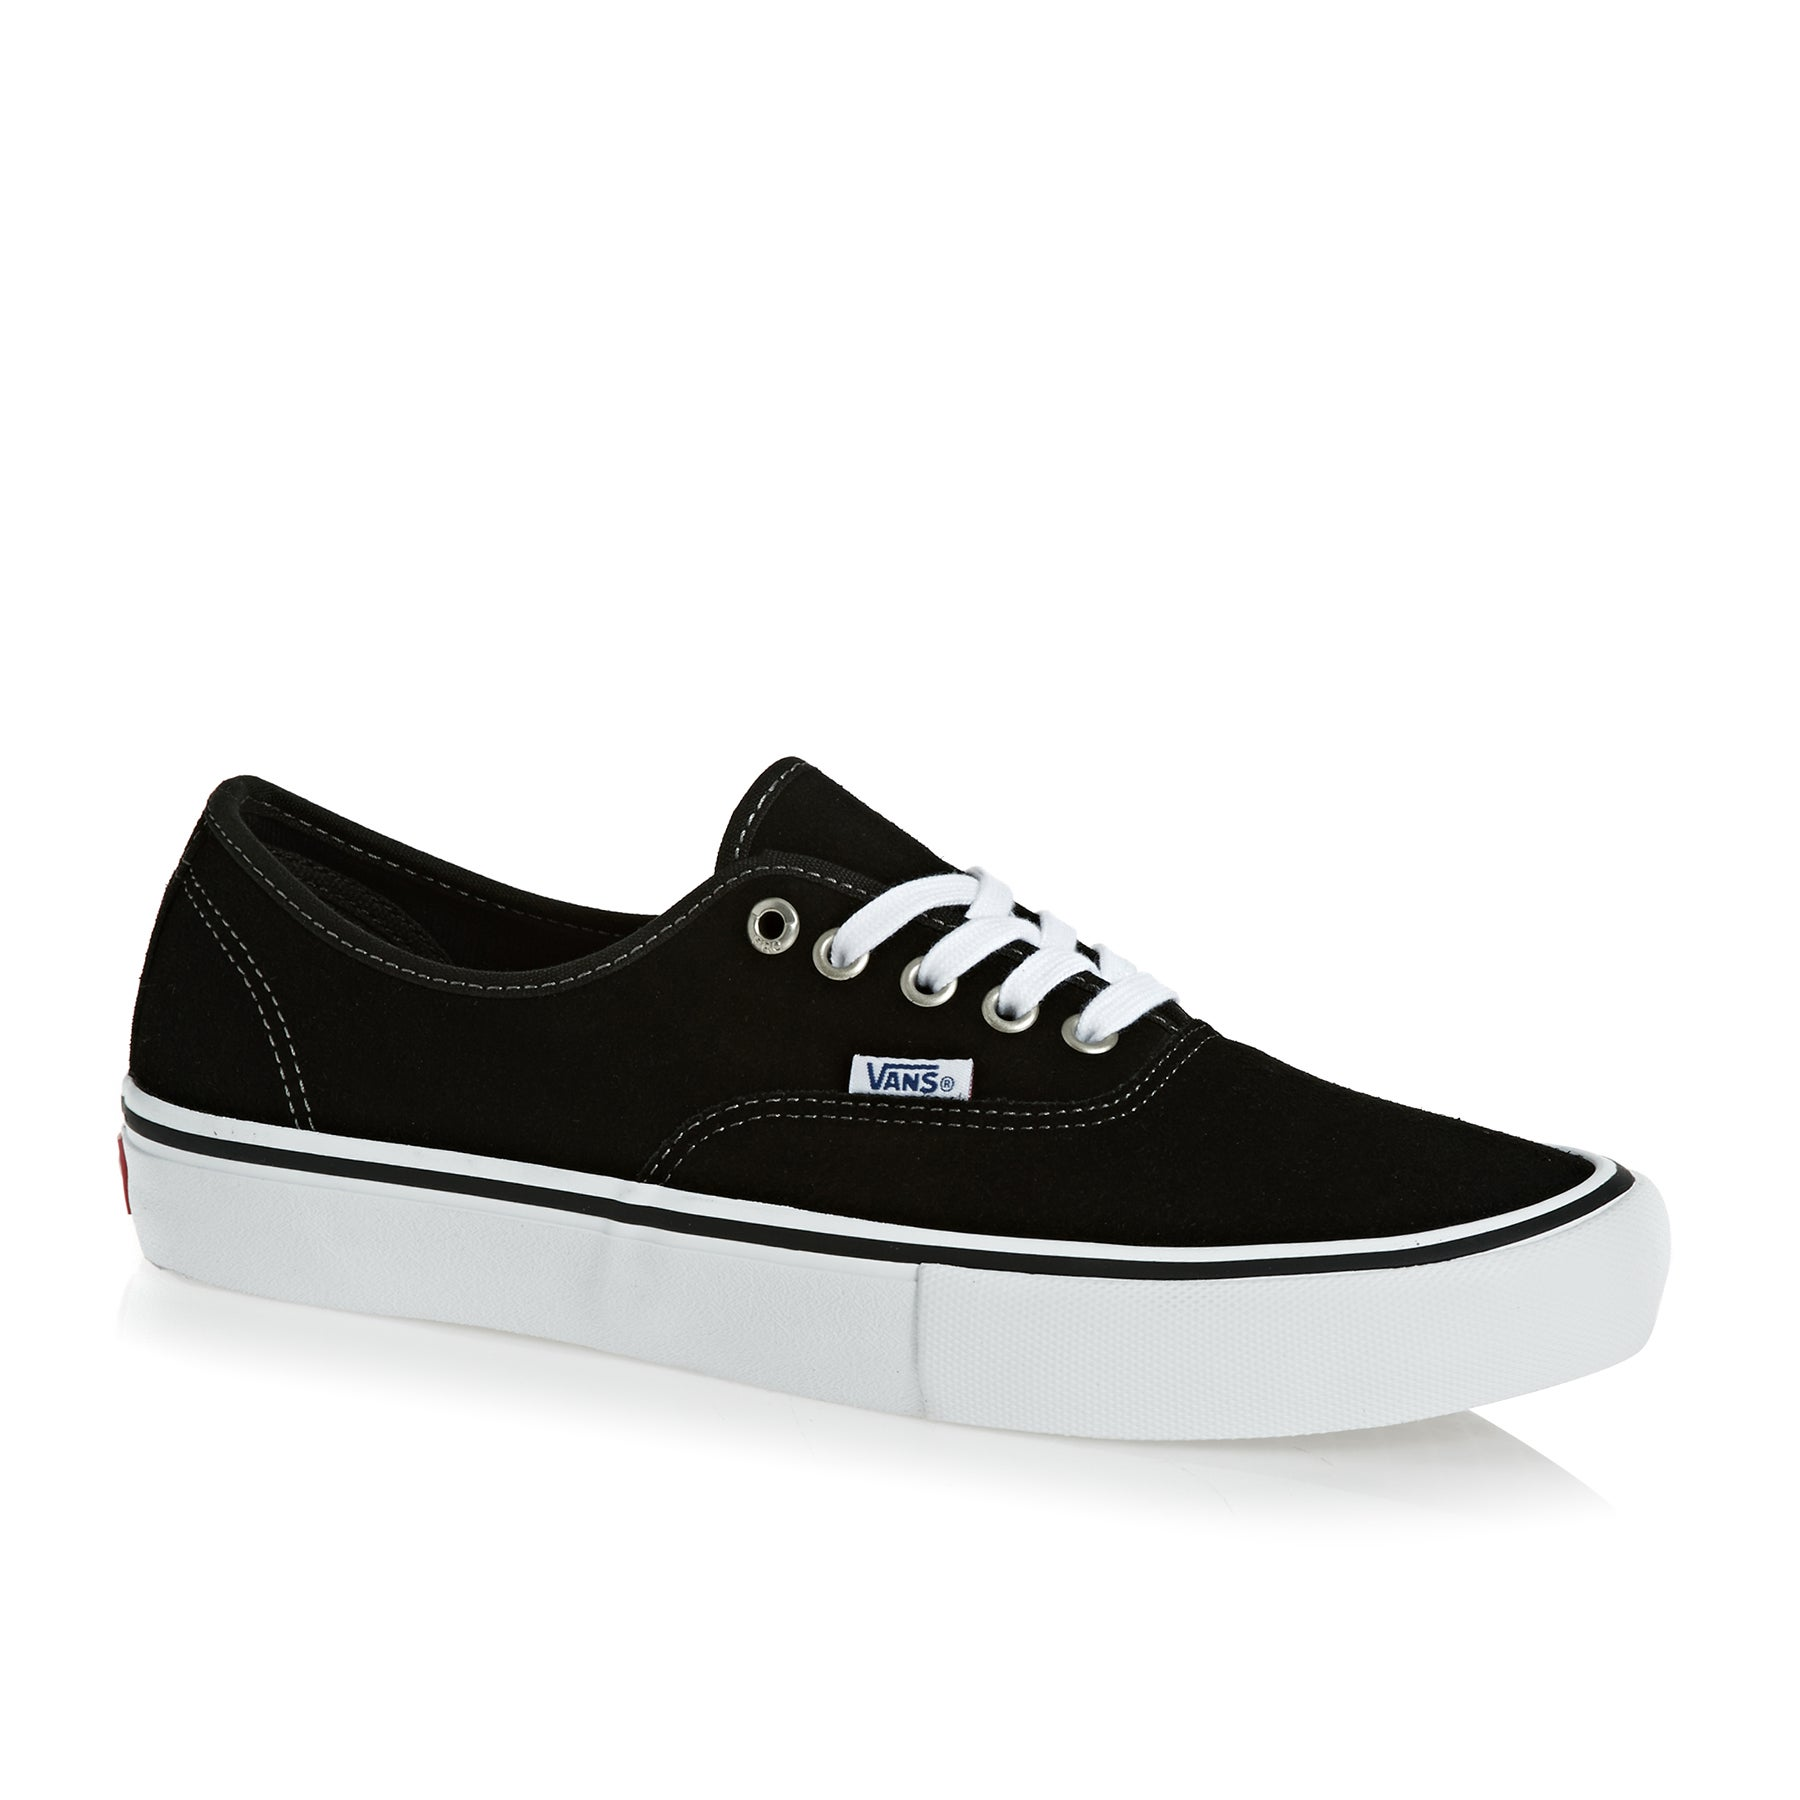 e0f7279c7f76 Vans Authentic Pro Shoes available from Surfdome